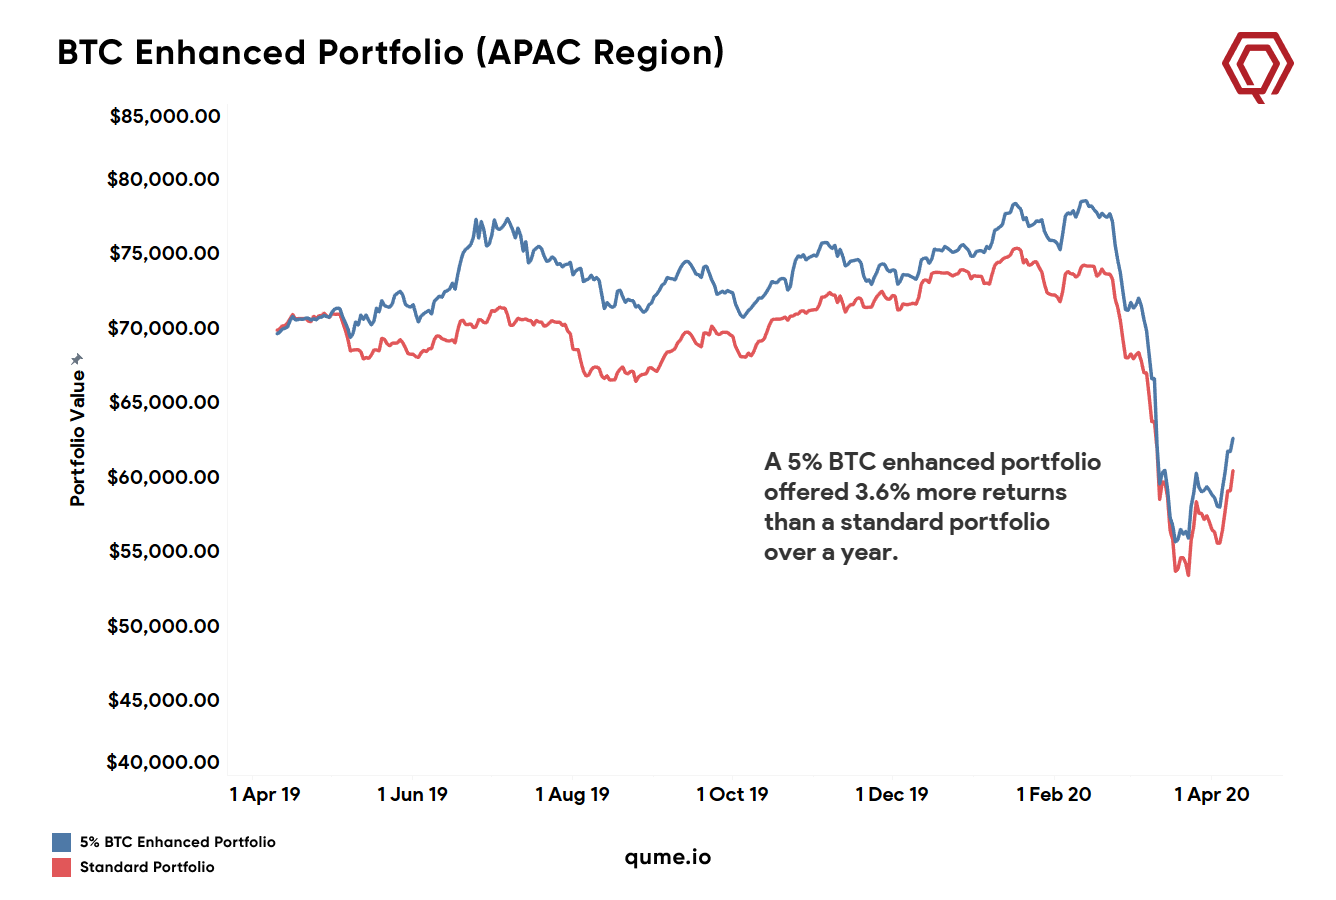 The line-chart shows how our portfolio's value changed from April 9, 2019, to April 9, 2020.